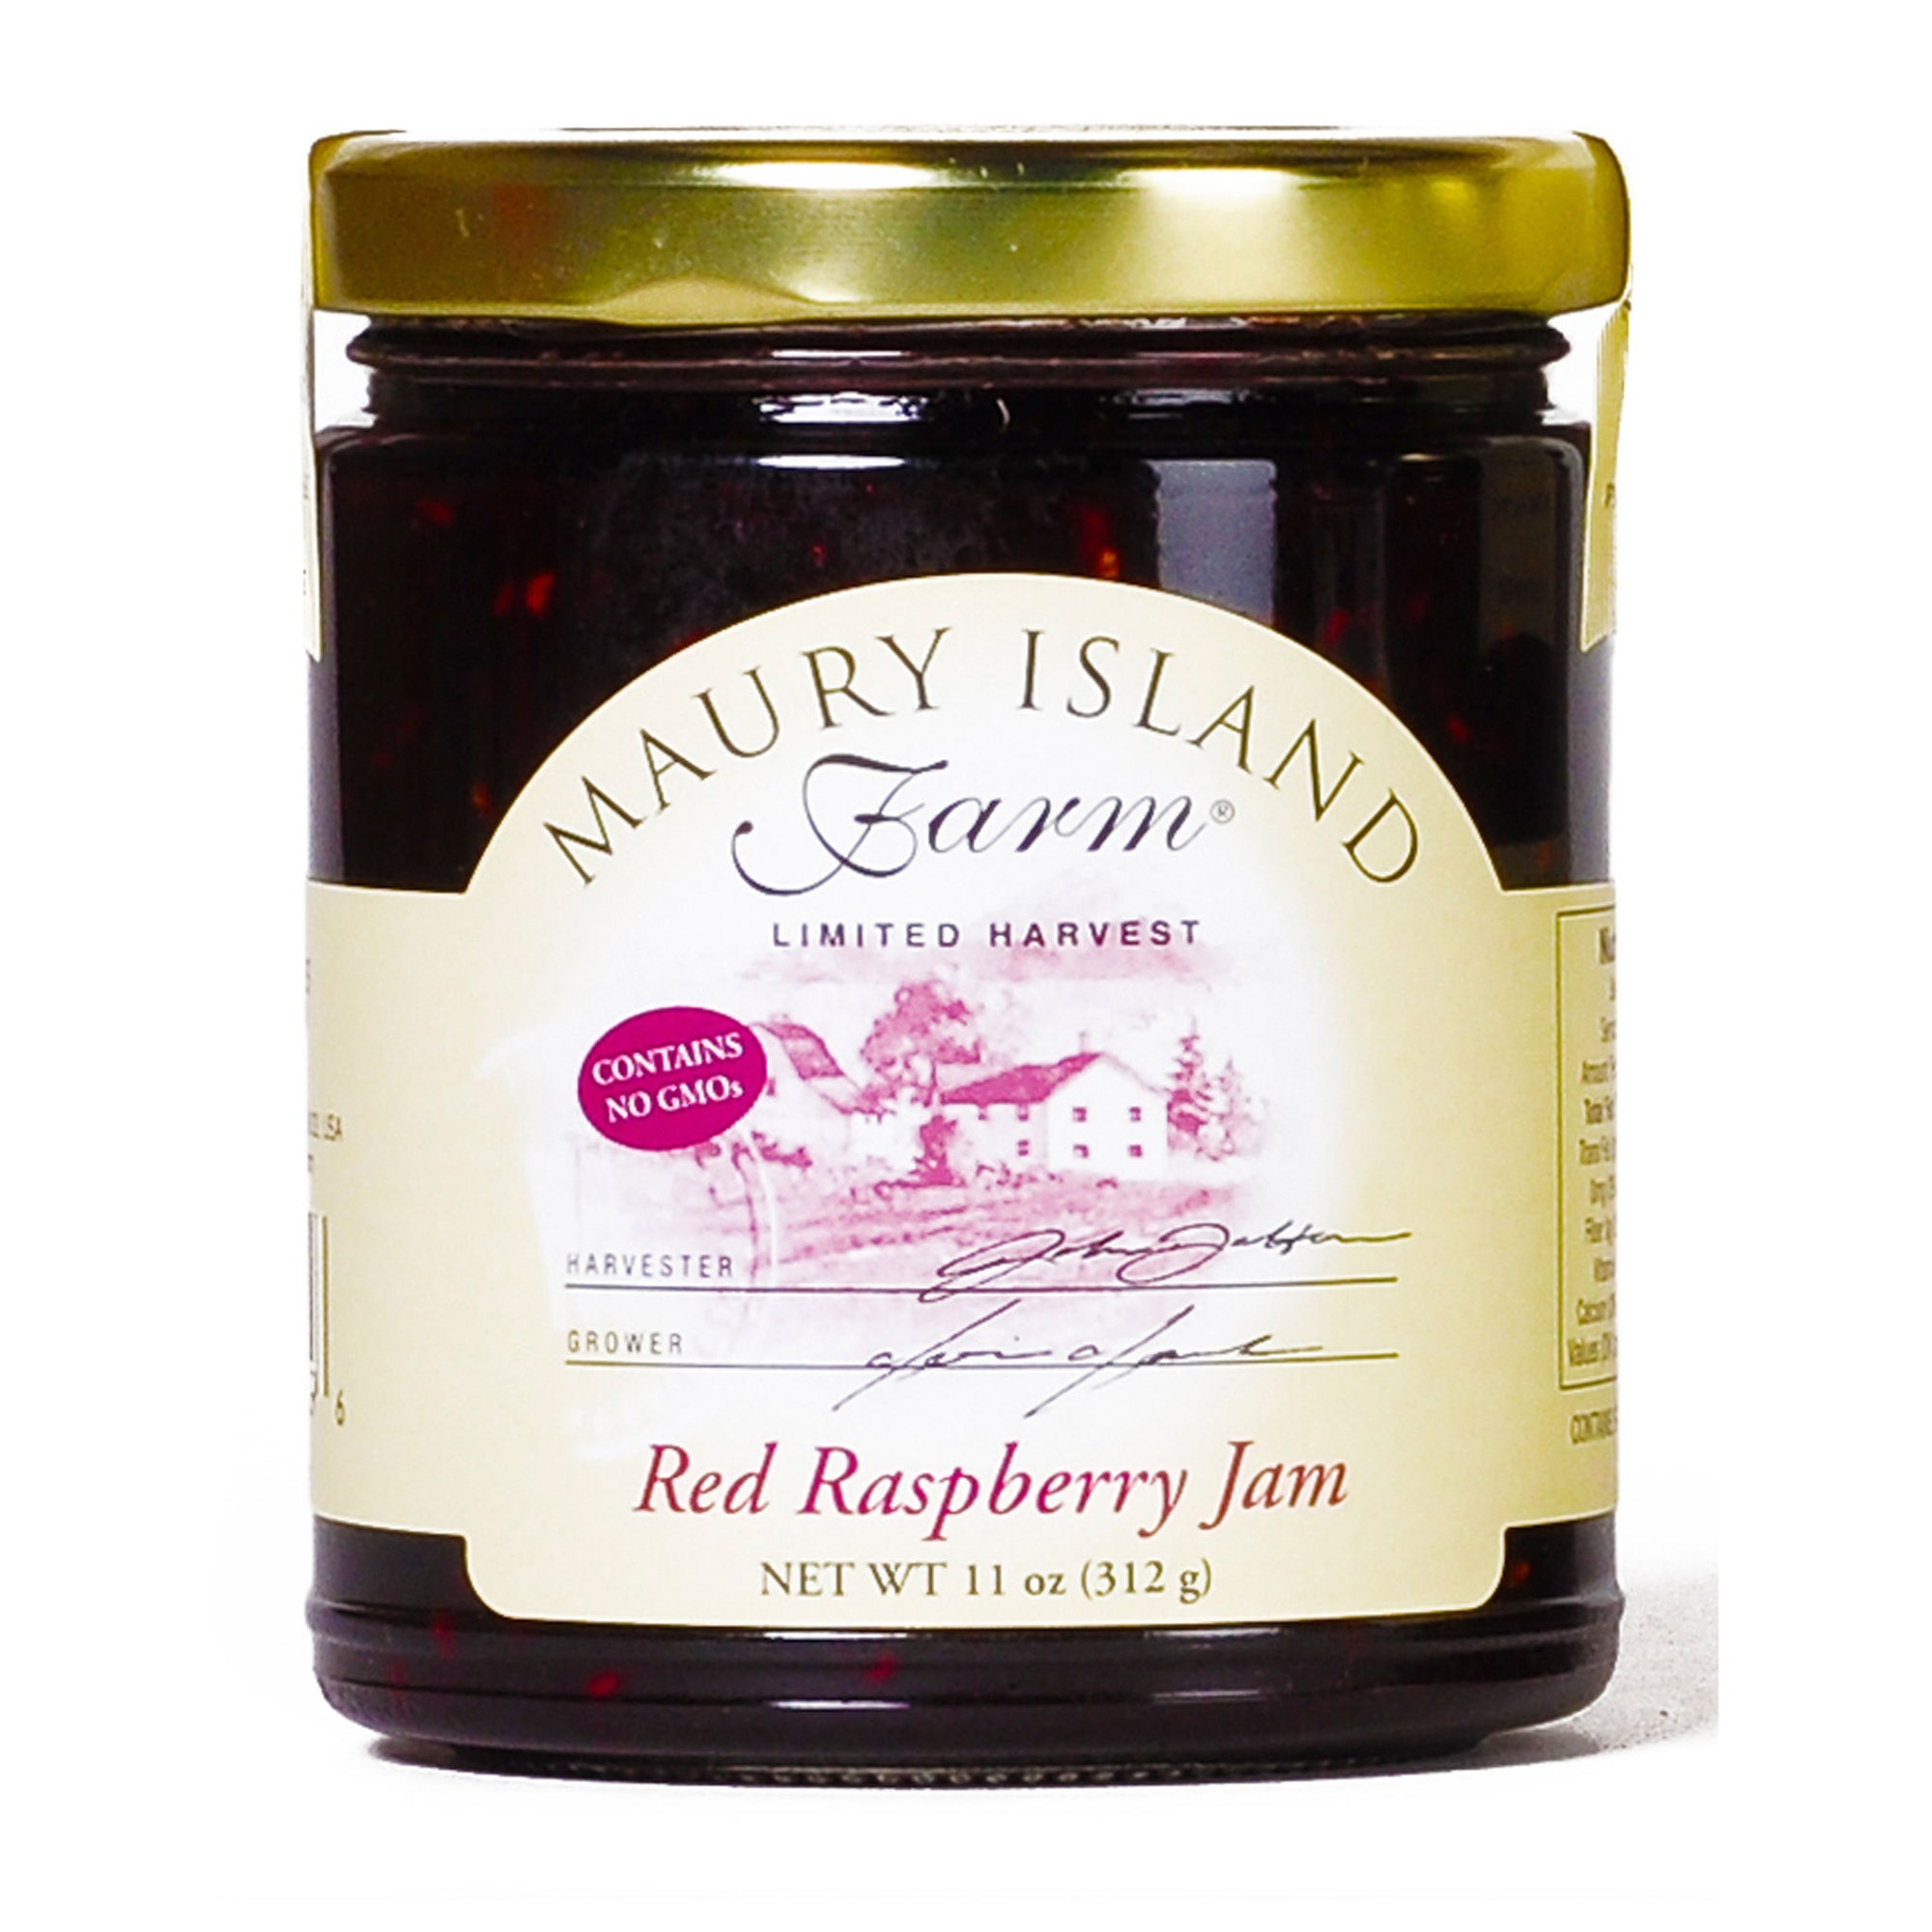 Maury Island Farm Limited harvest Red Raspberry Jam Contains No GMOs 11-Ounce Glass Jar